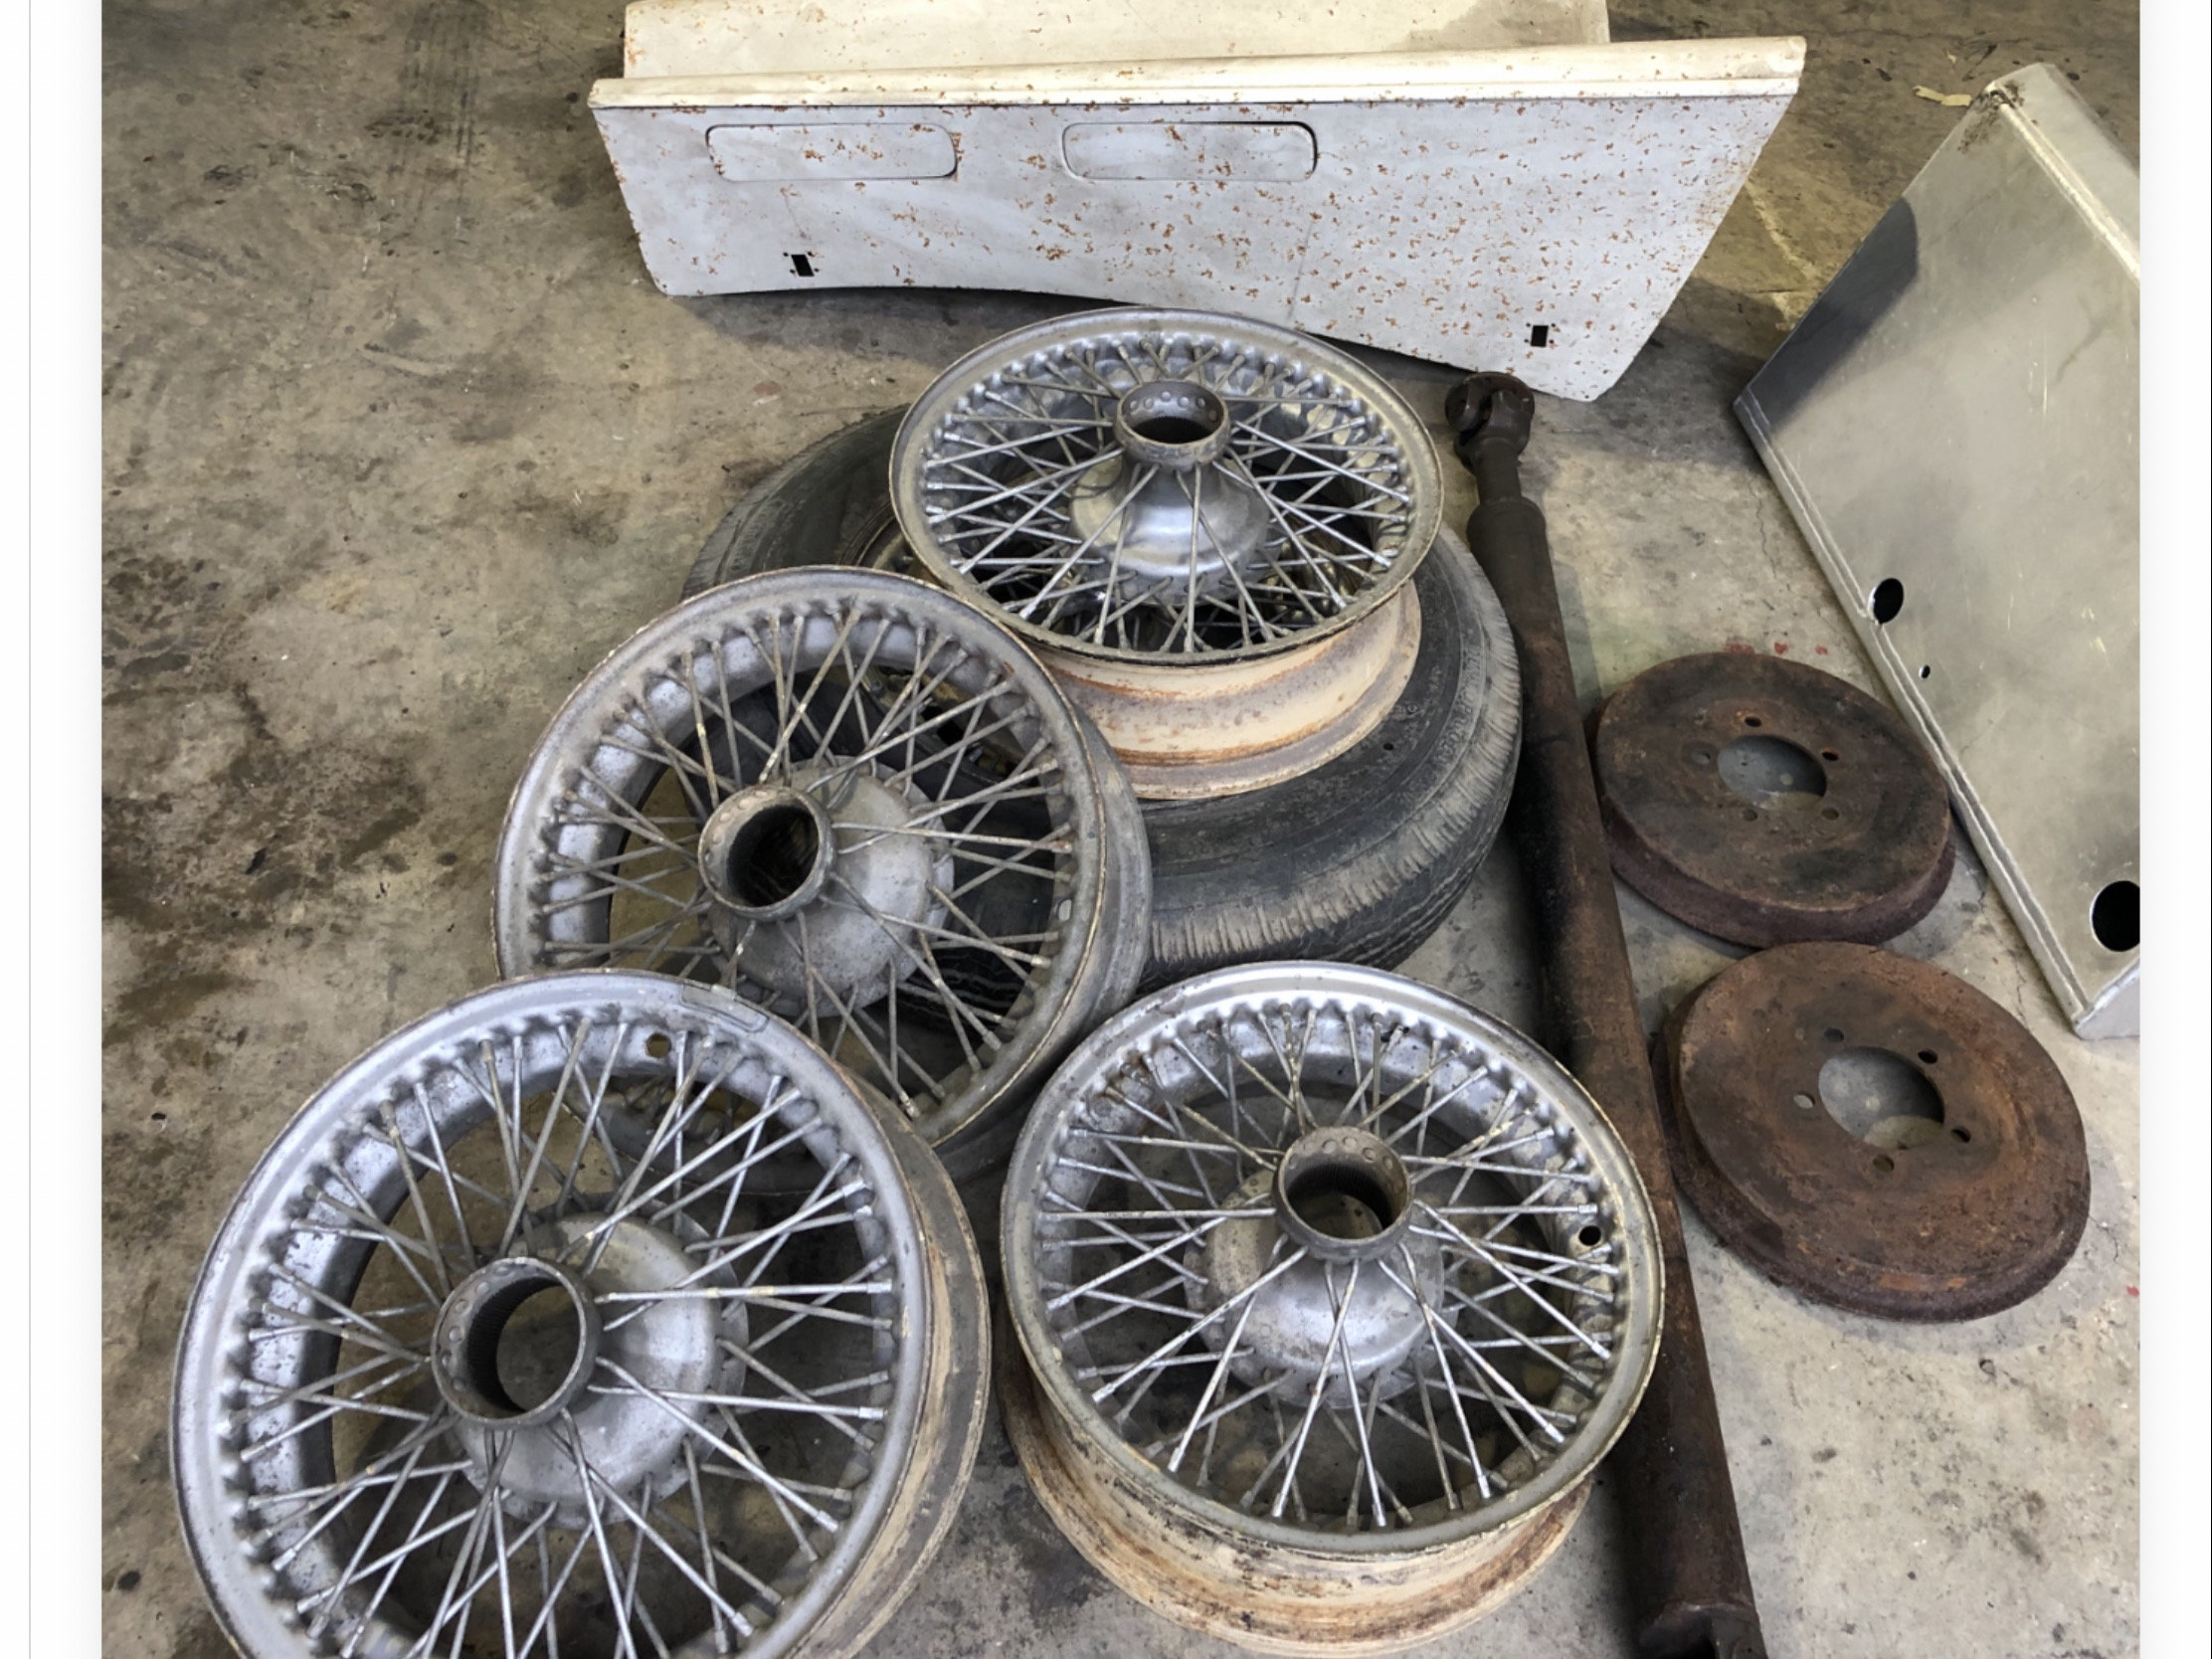 1950 ALVIS SPECIAL KIT OF PARTS For Sale (picture 6 of 6)